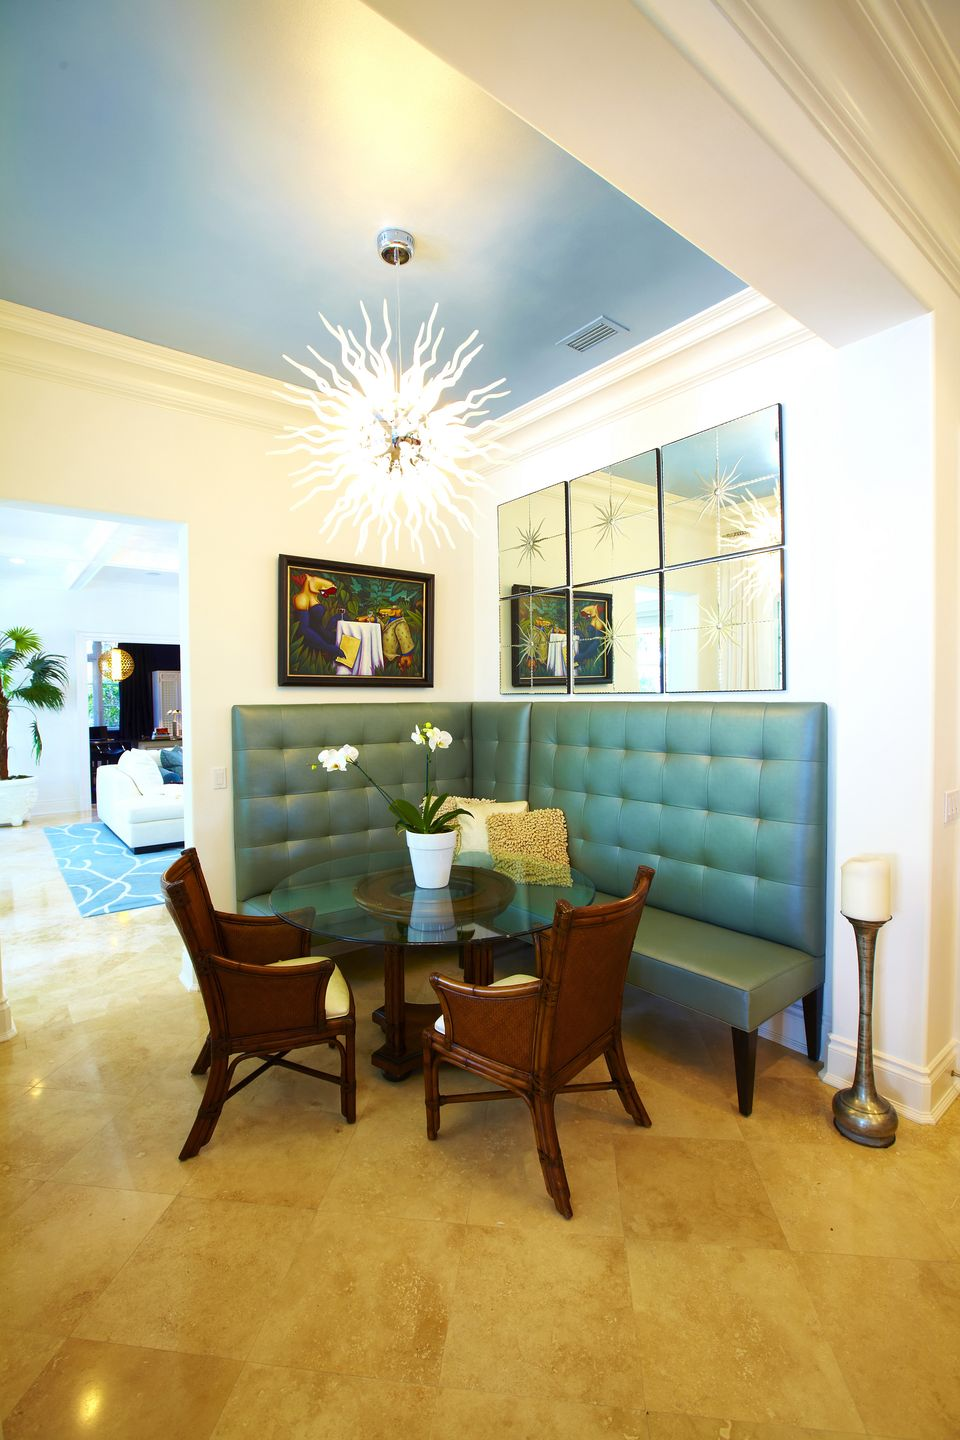 Incroyable Simple Key West Interior Design With A Pair Of Wood Chairs And L Shape Sofa  With